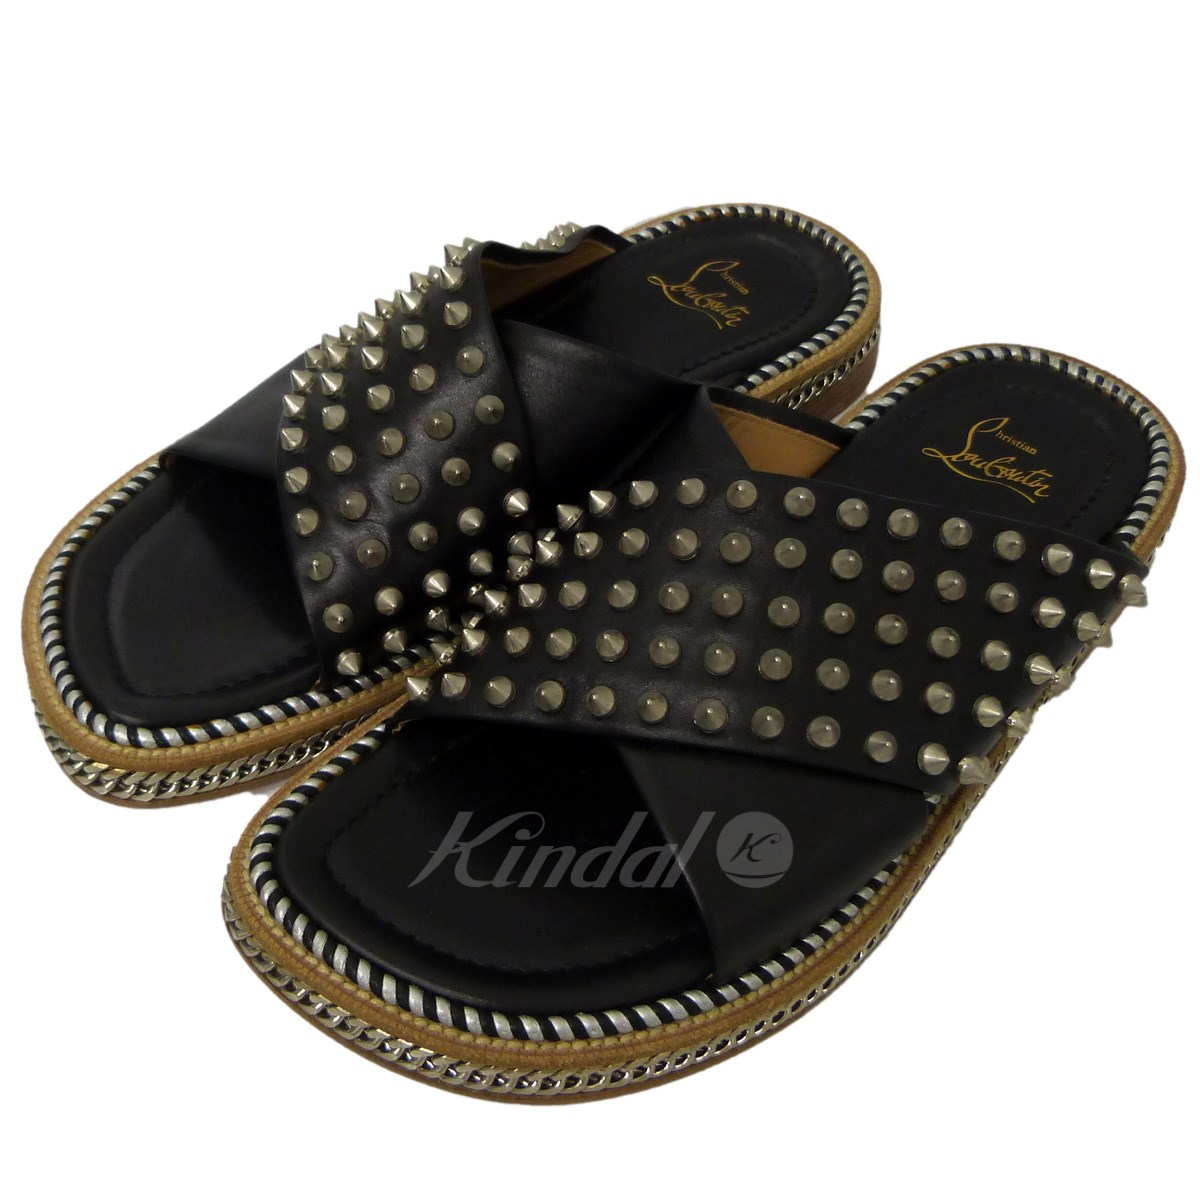 timeless design b1b03 086c2 CHRISTIAN LOUBOUTIN studs chain sandals black size: 39 (クリスチャンルブタン)